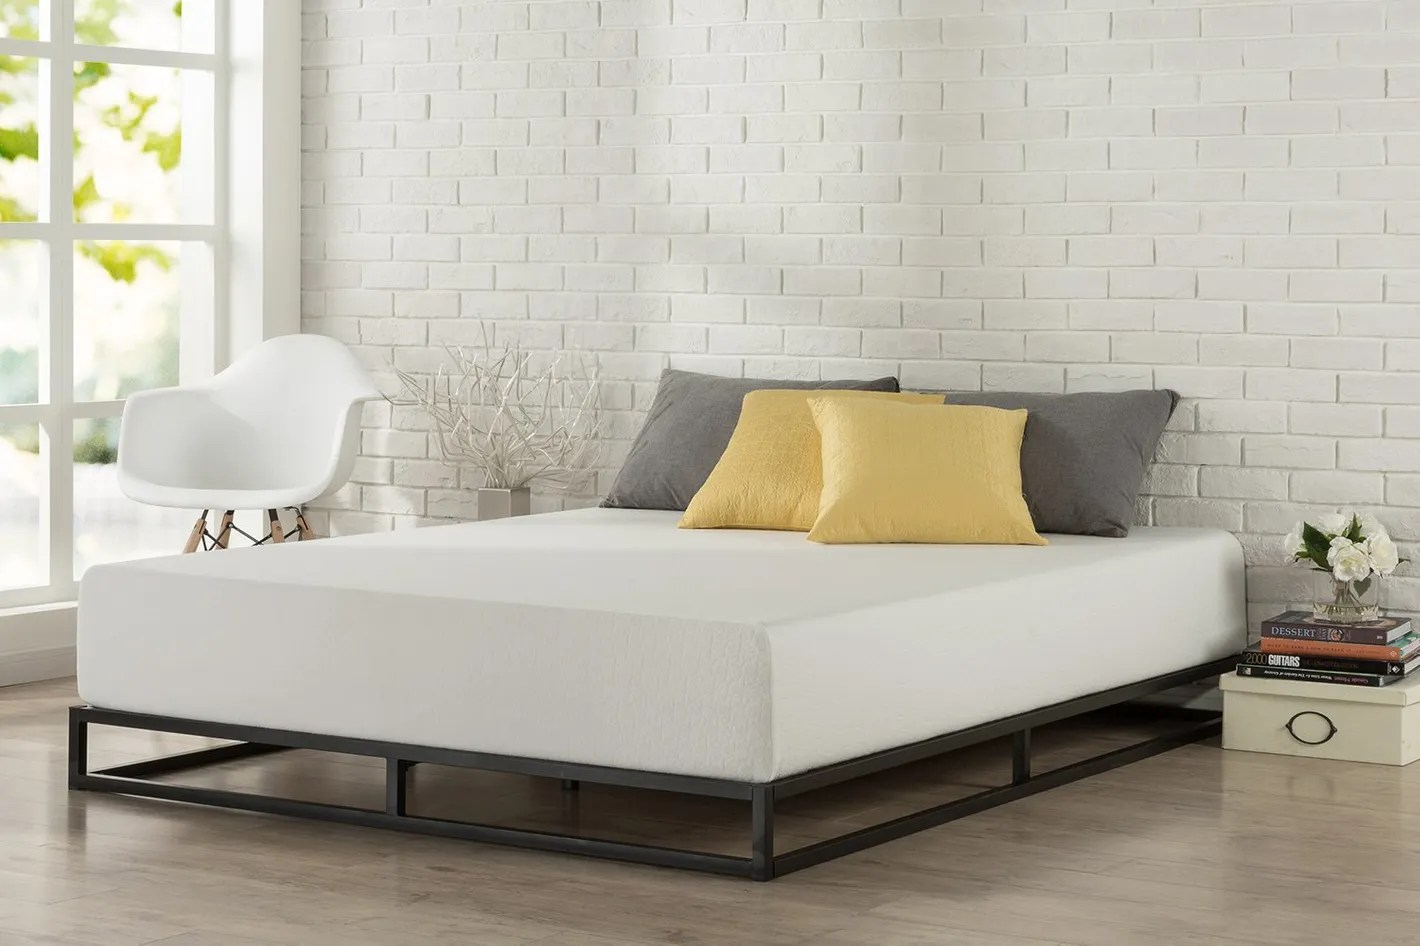 Diy Minimalist Bed Frame 15 Best Platform Beds Under 500 2019